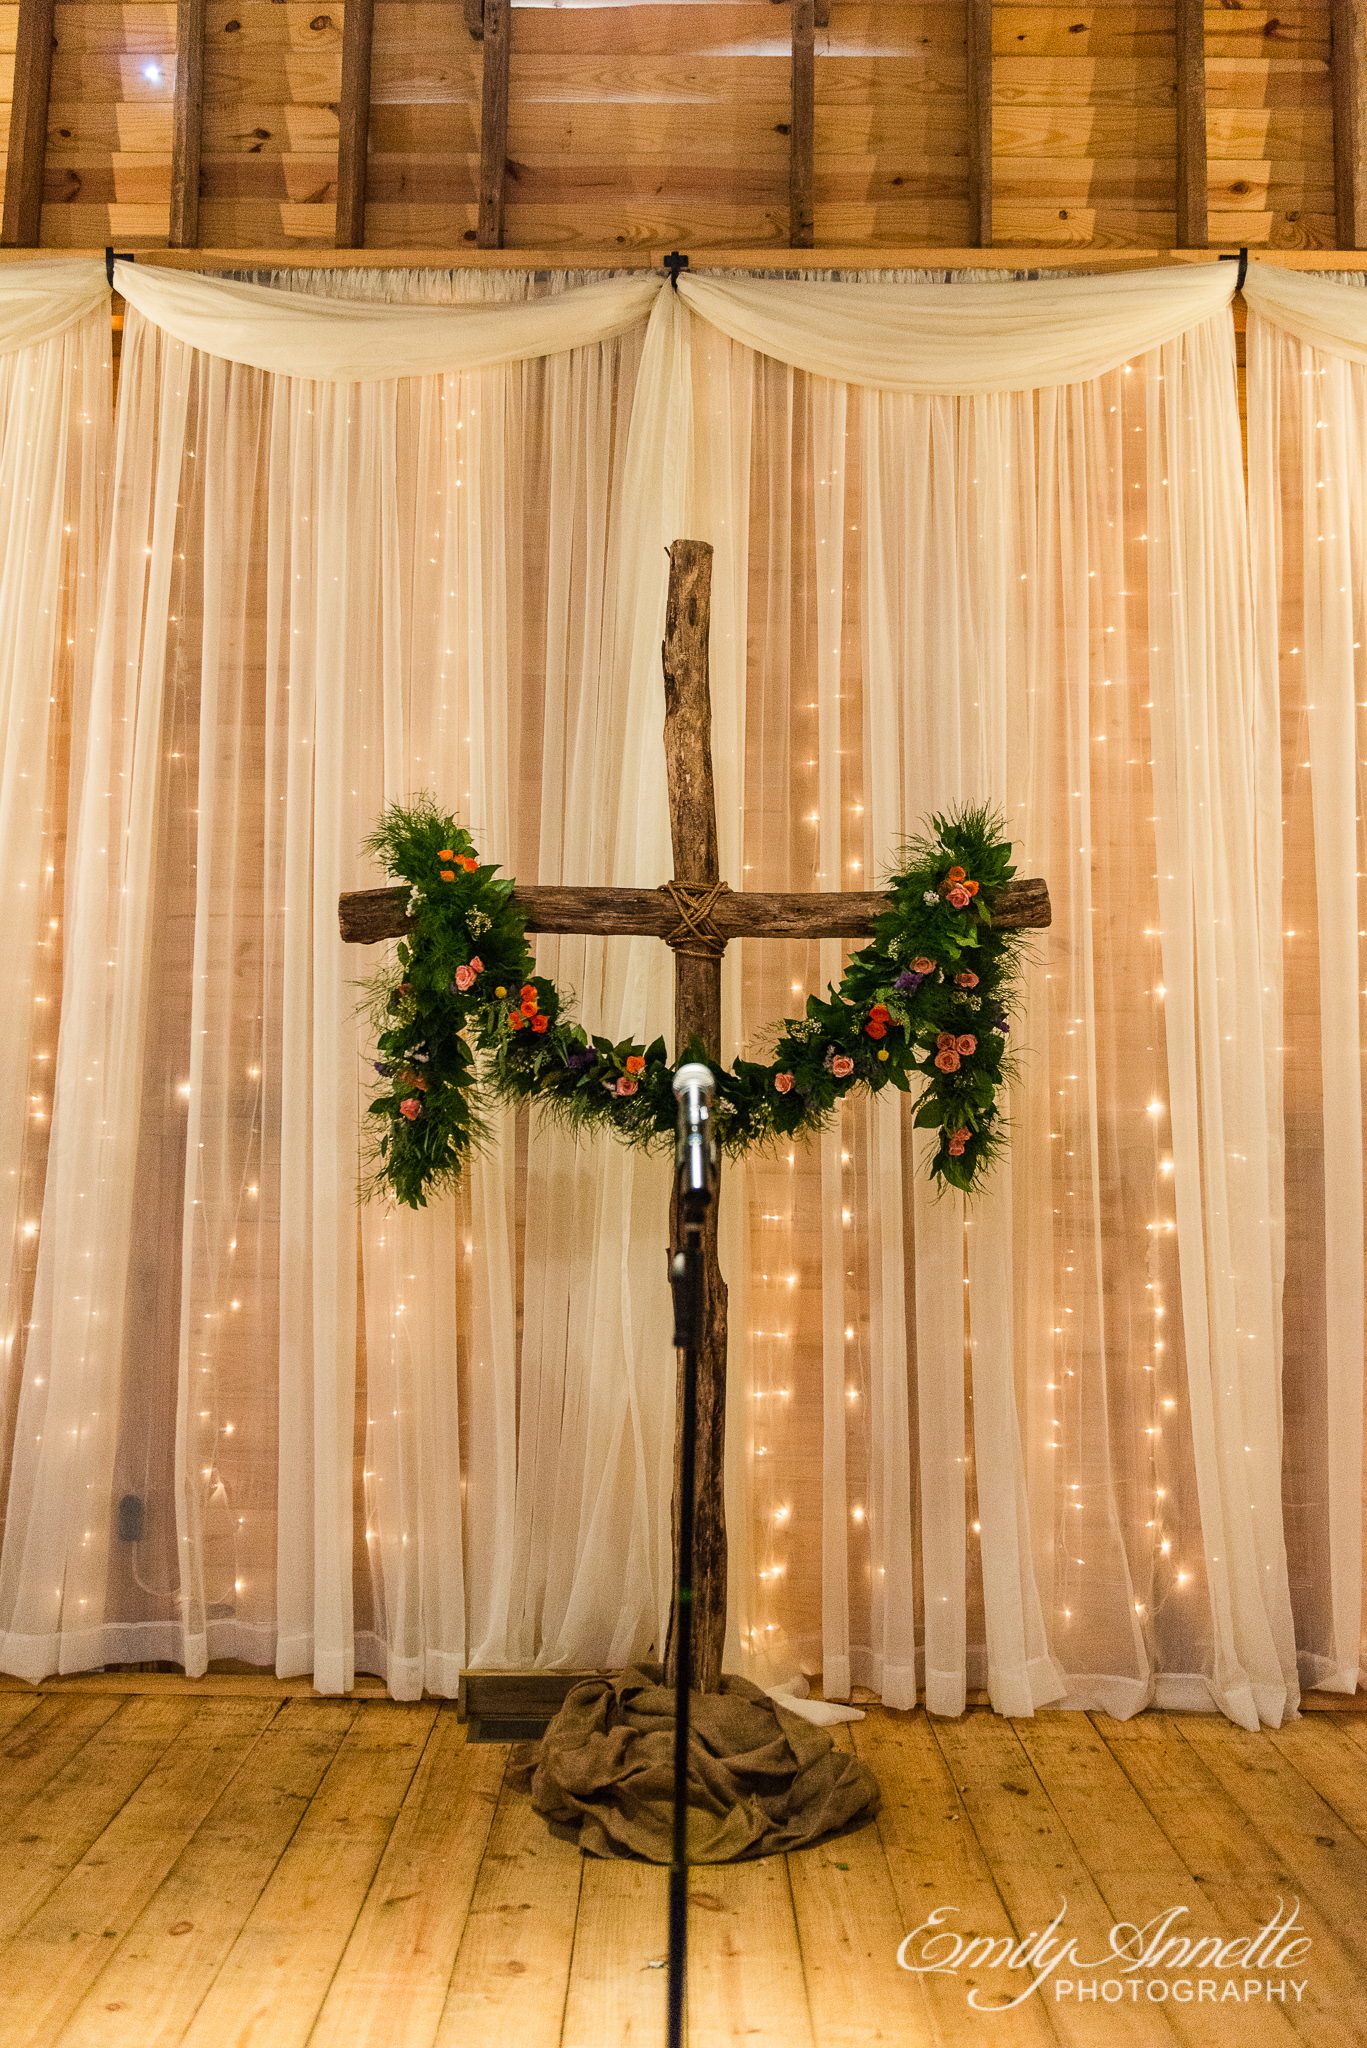 A wooden cross decorated with a garland of colorful flowers and greenery for a wedding ceremony during a country wedding at Amber Grove near Richmond, Virginia